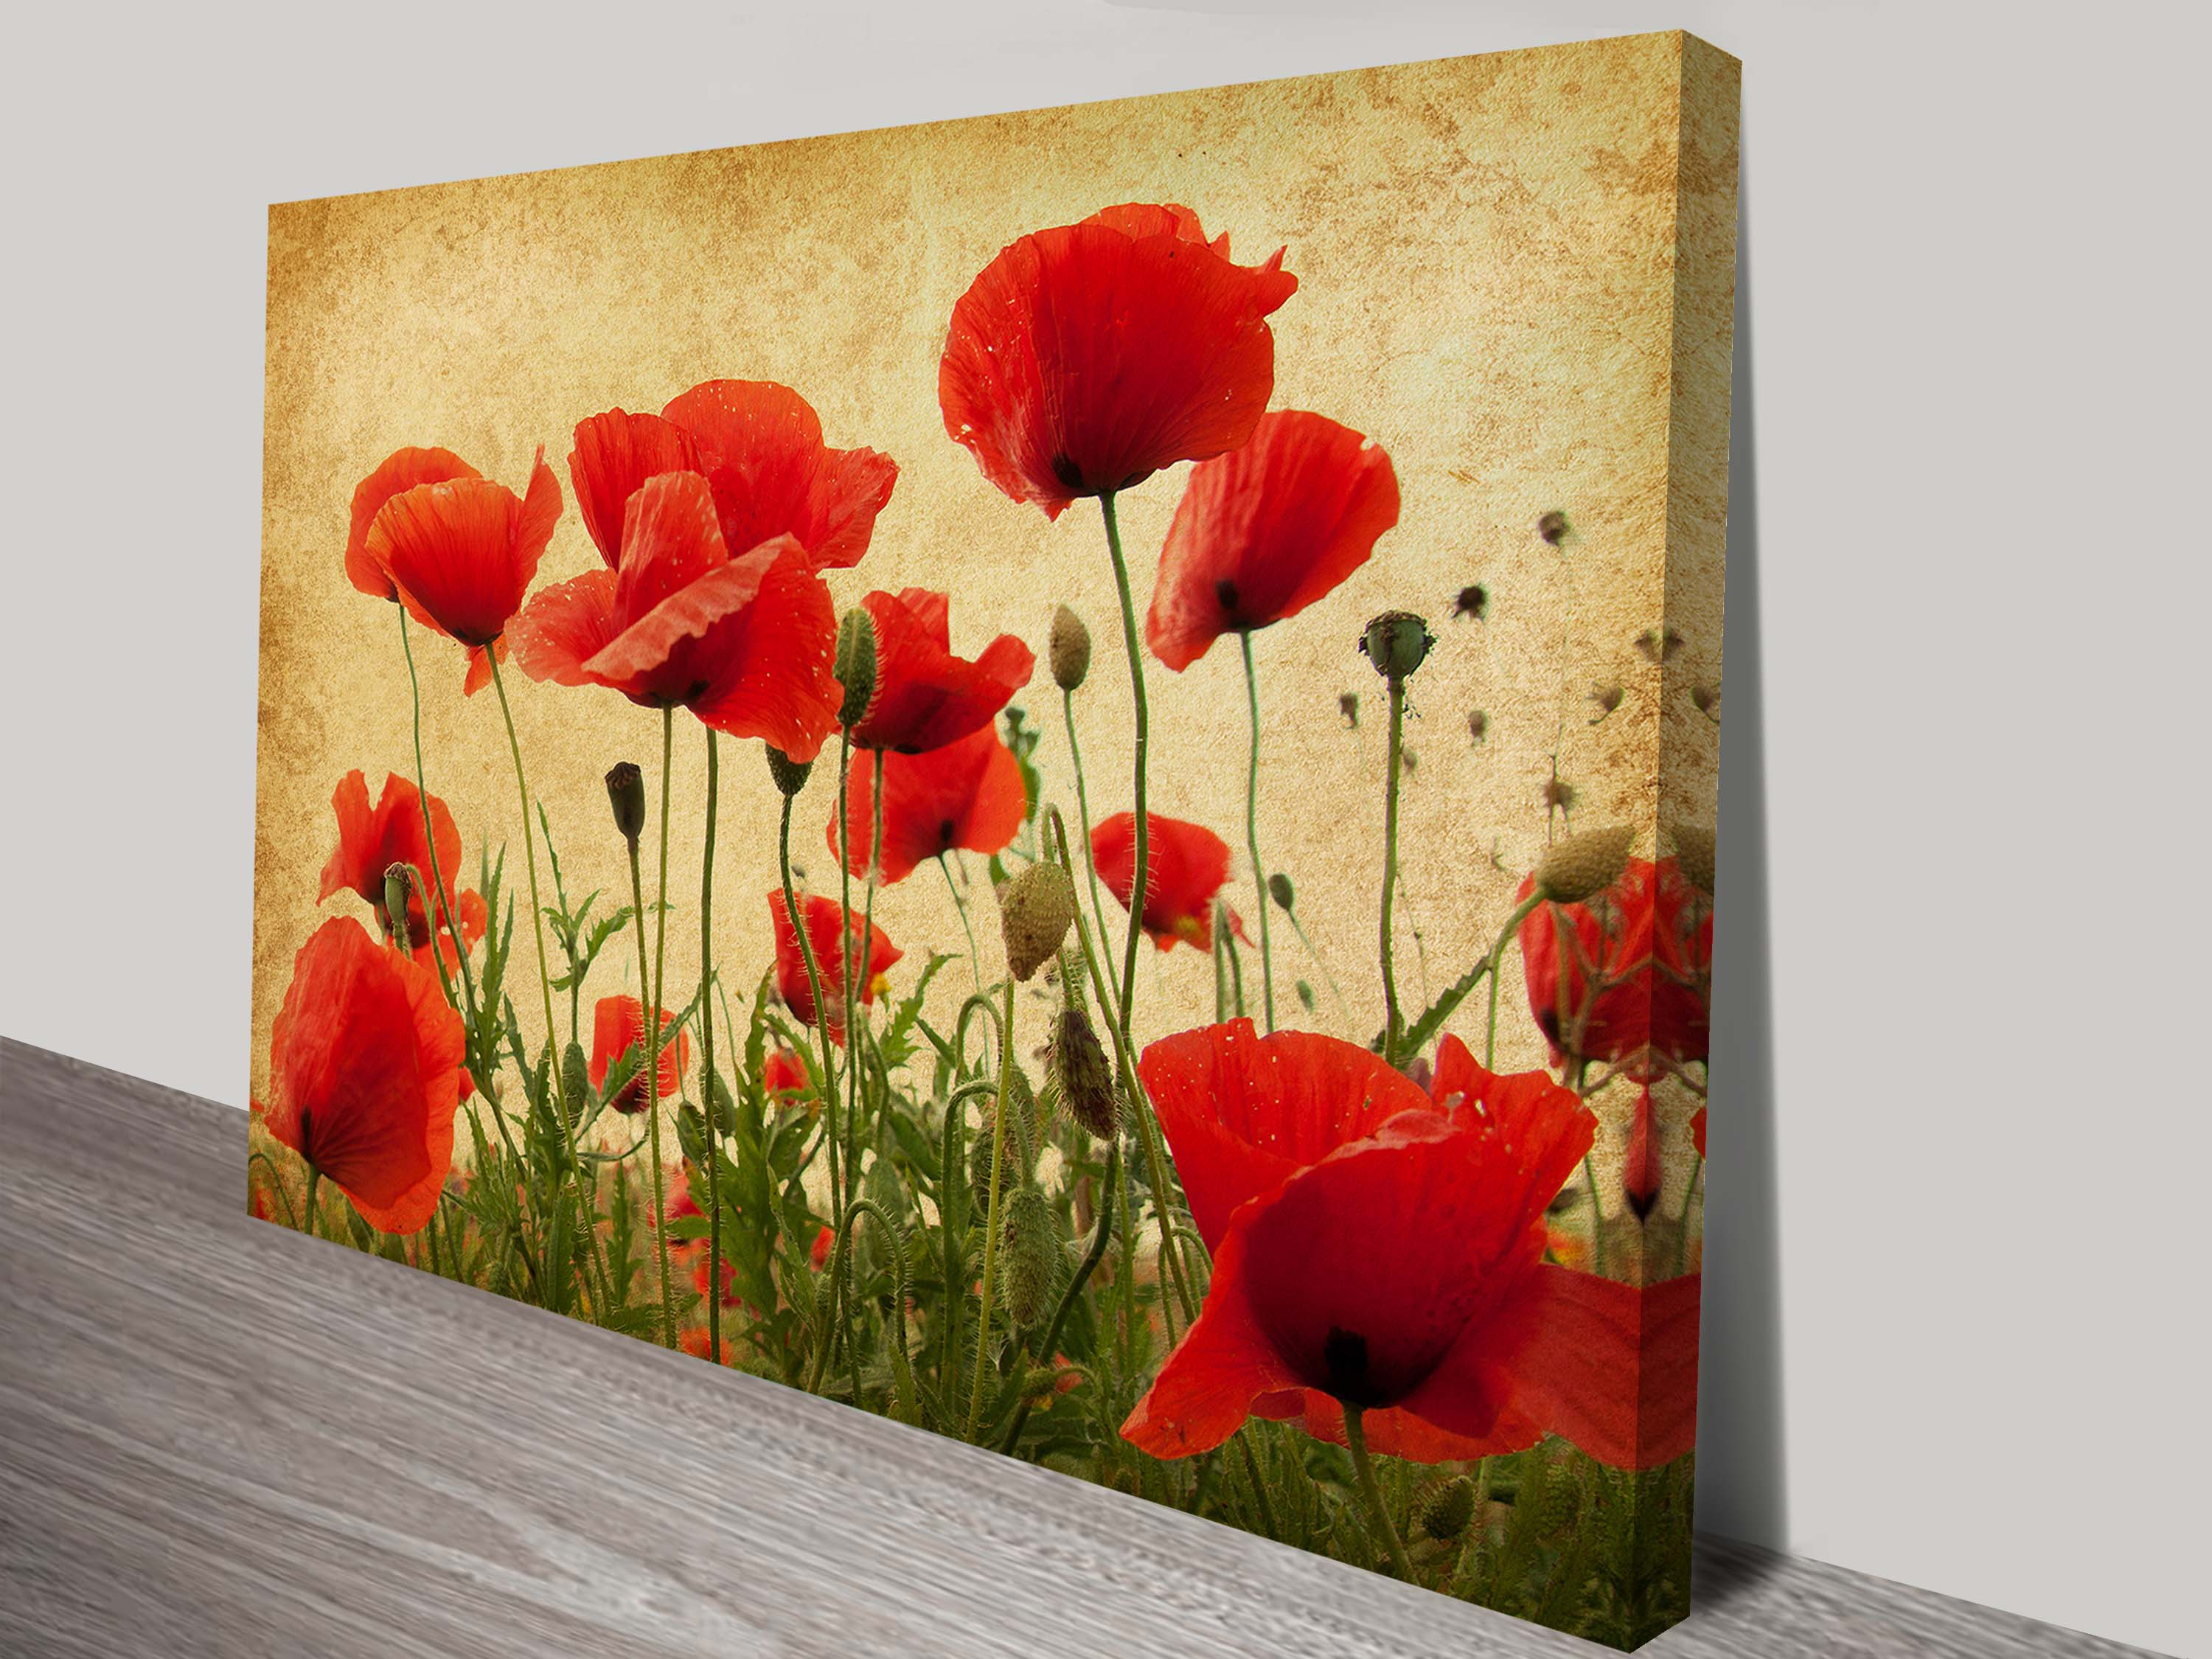 Flower Walls Melbourne Canvas Prints Of Poppies Flower Art Canvas Wall Print